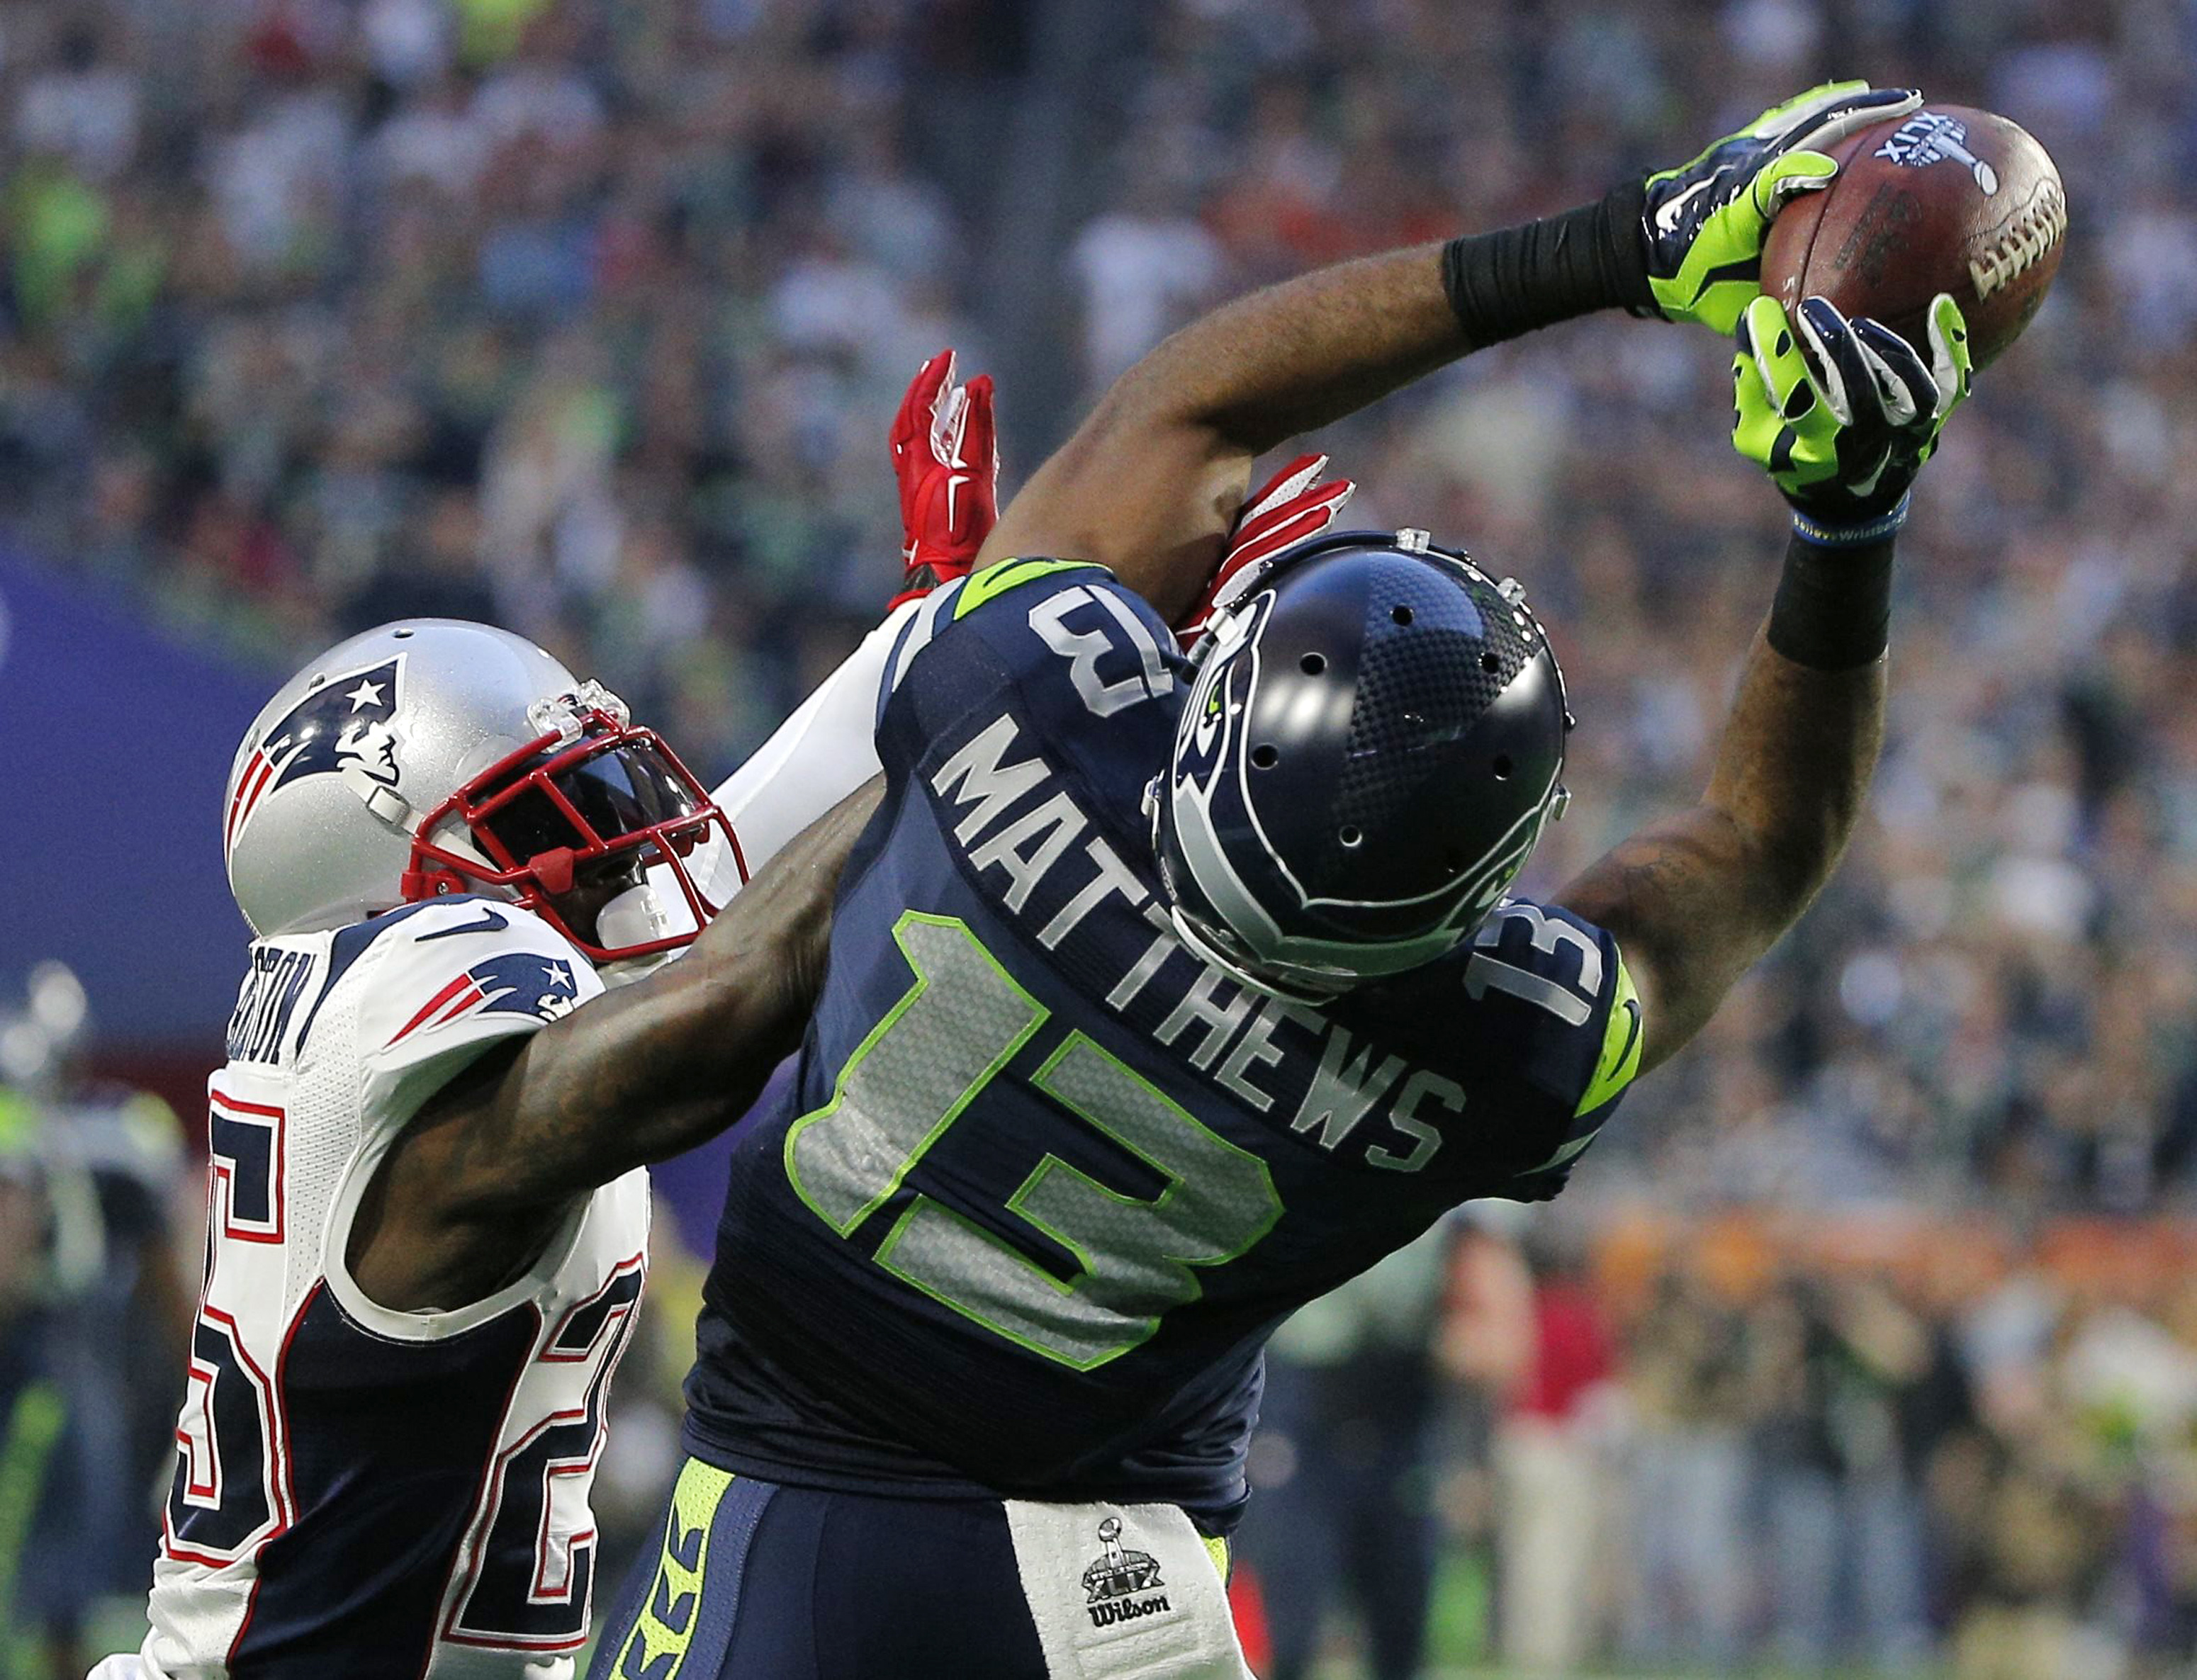 Seattle Seahawks wide receiver Matthews catches a pass against New England Patriots cornerback Arrington in the second quarter during the NFL Super Bowl XLIX football game in Glendale